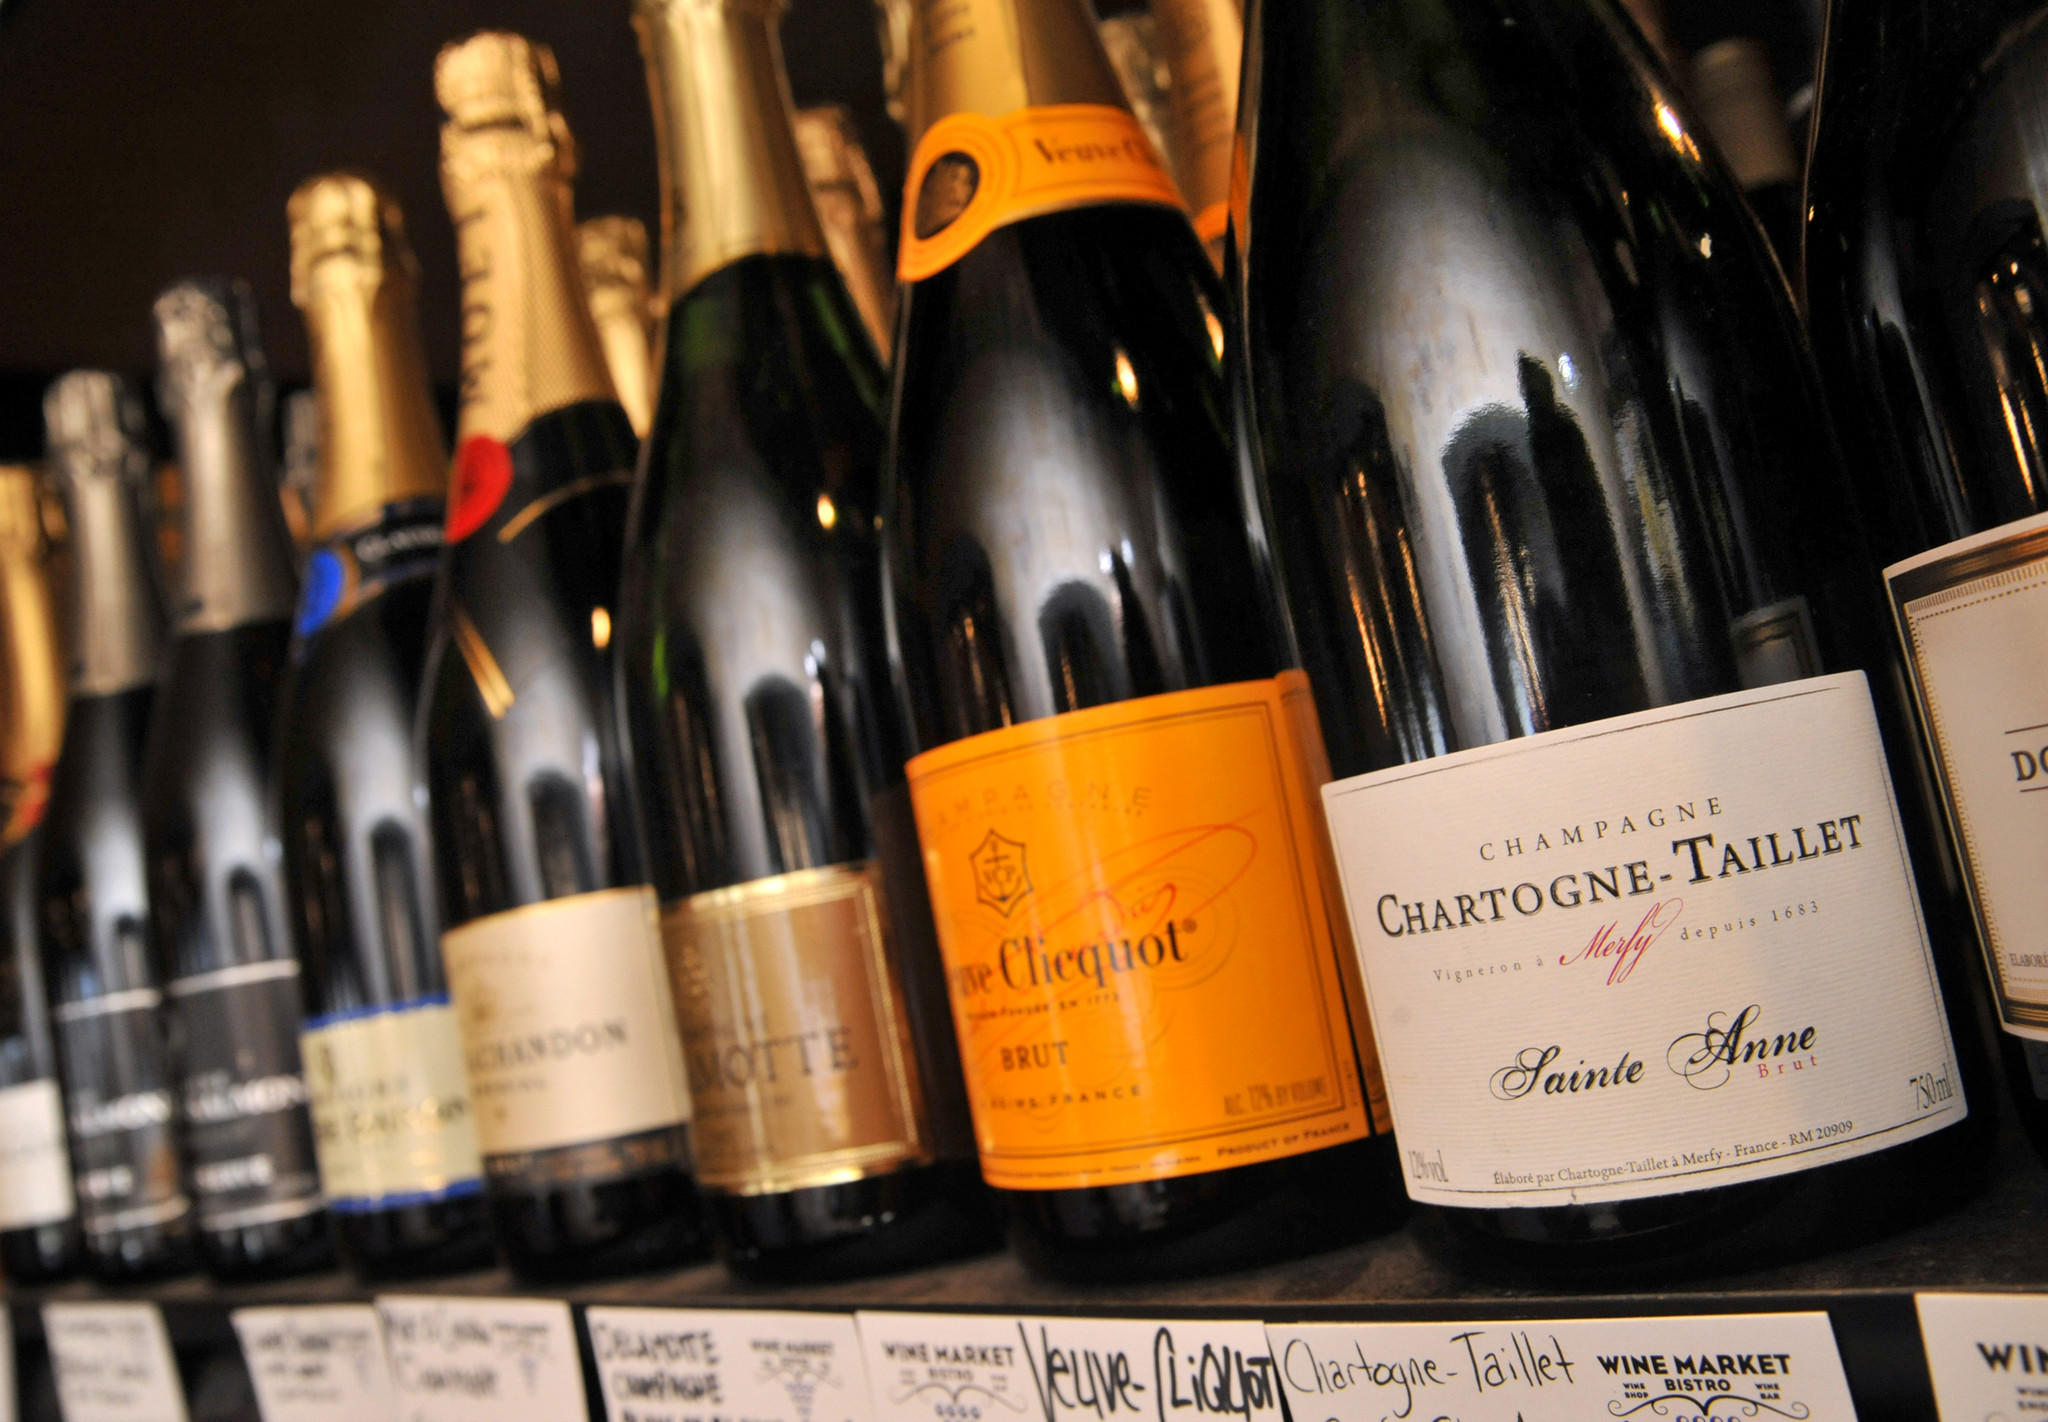 Sales of French champagne may be up this year, according to Lucien Walsh, wine director at The Wine Market in Locust Point.